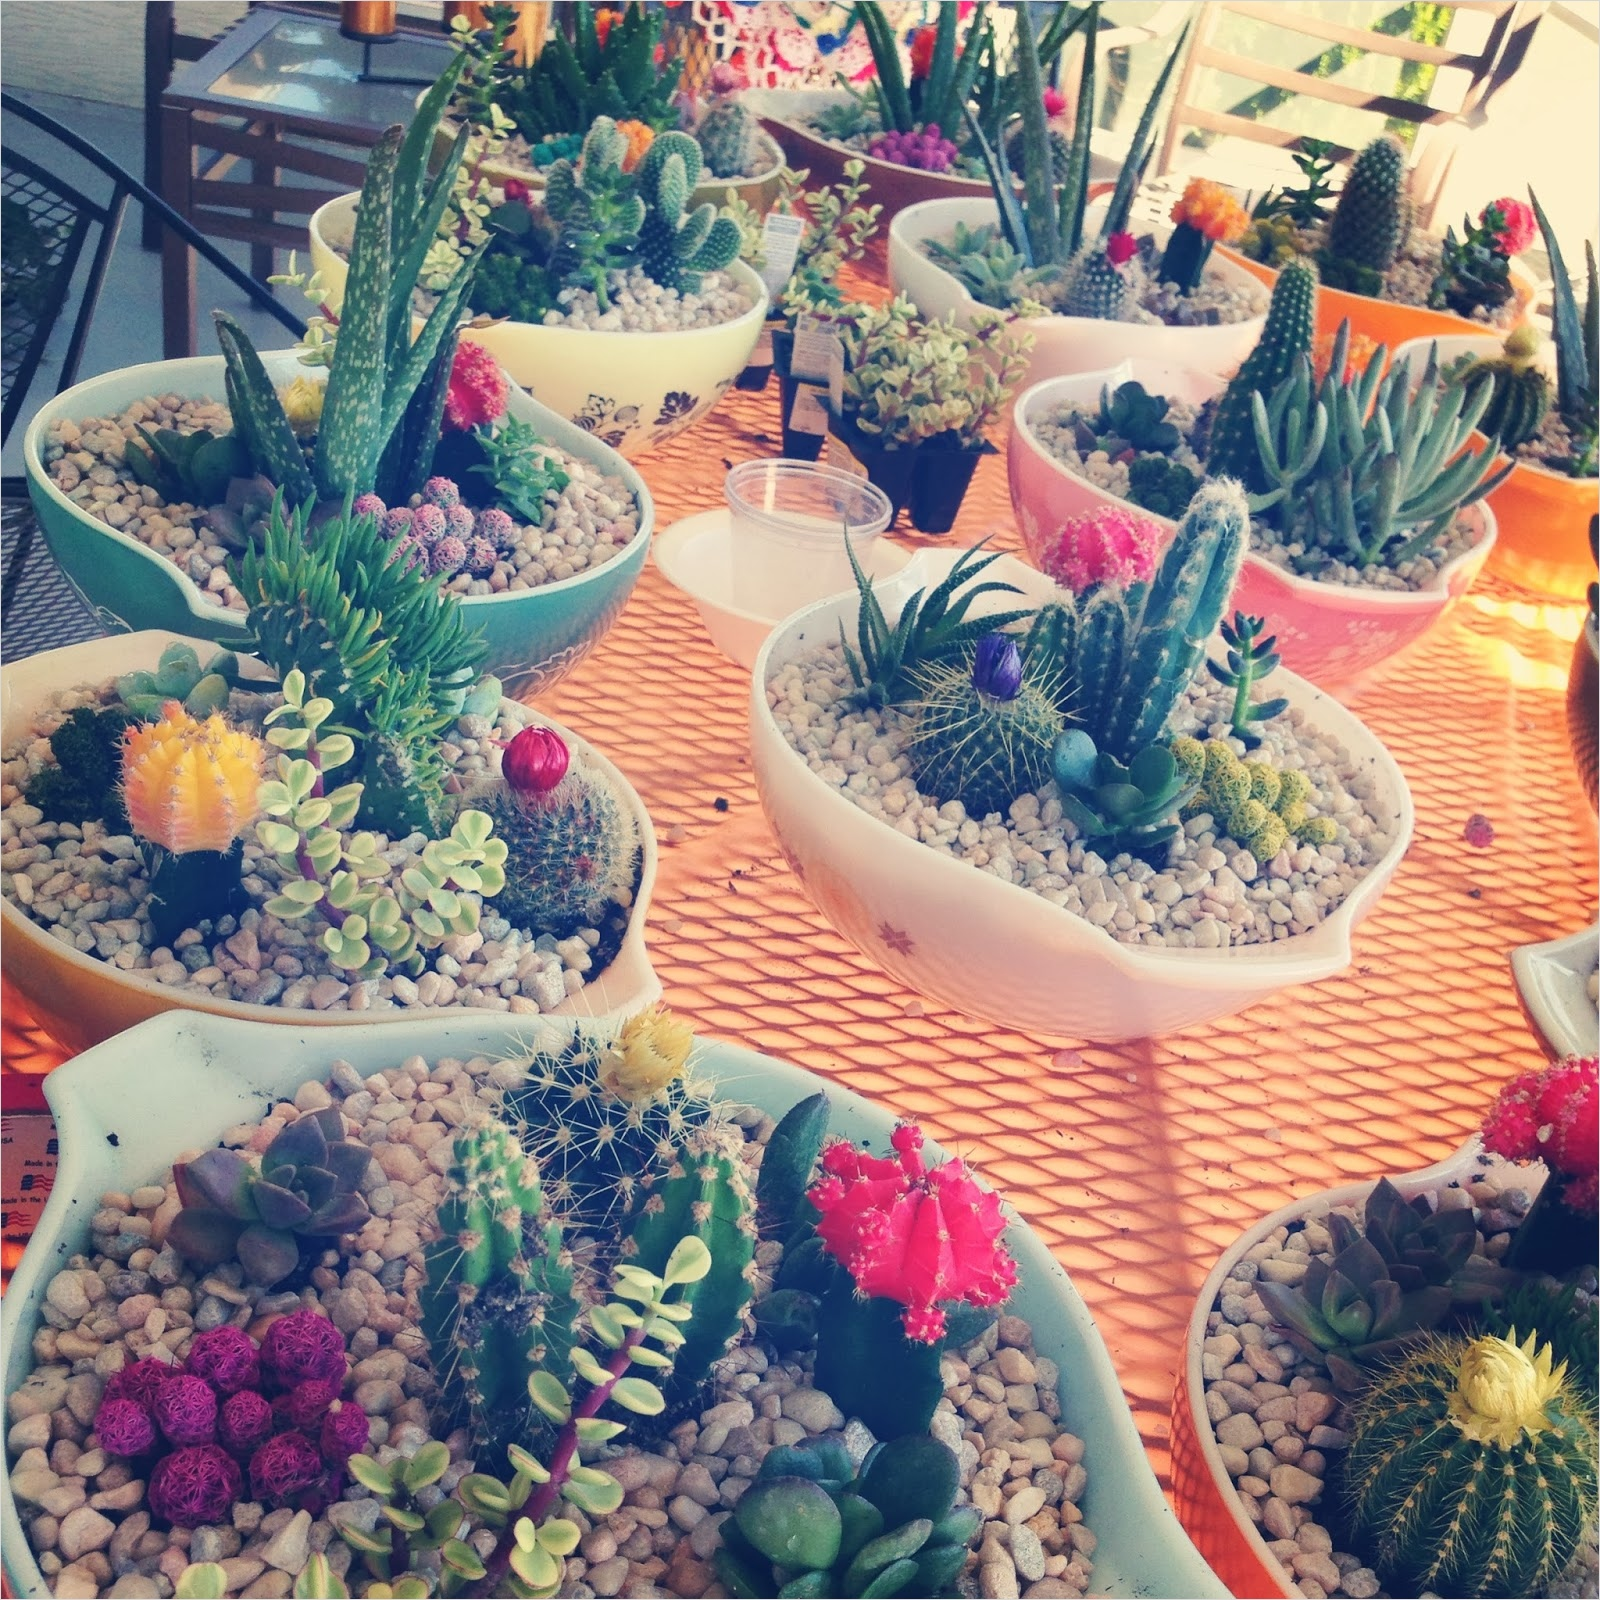 43 Beautiful Cactus Centerpiece Ideas 14 Loose Shoelaces Diy Cacti Wedding Centerpieces 6